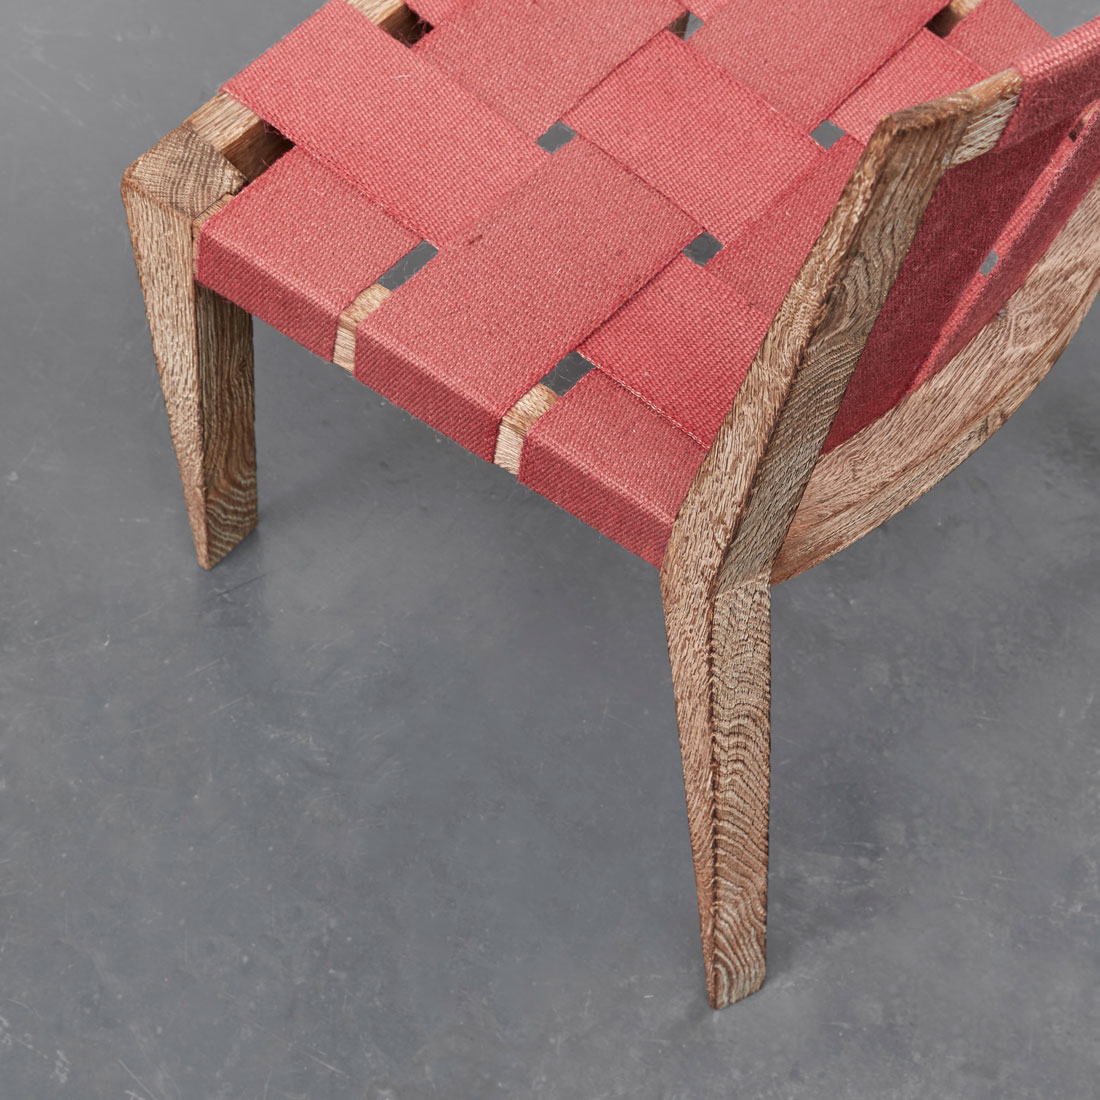 """Jean Royère, Set of 4 """"Sangles"""" chairs, vue 03"""